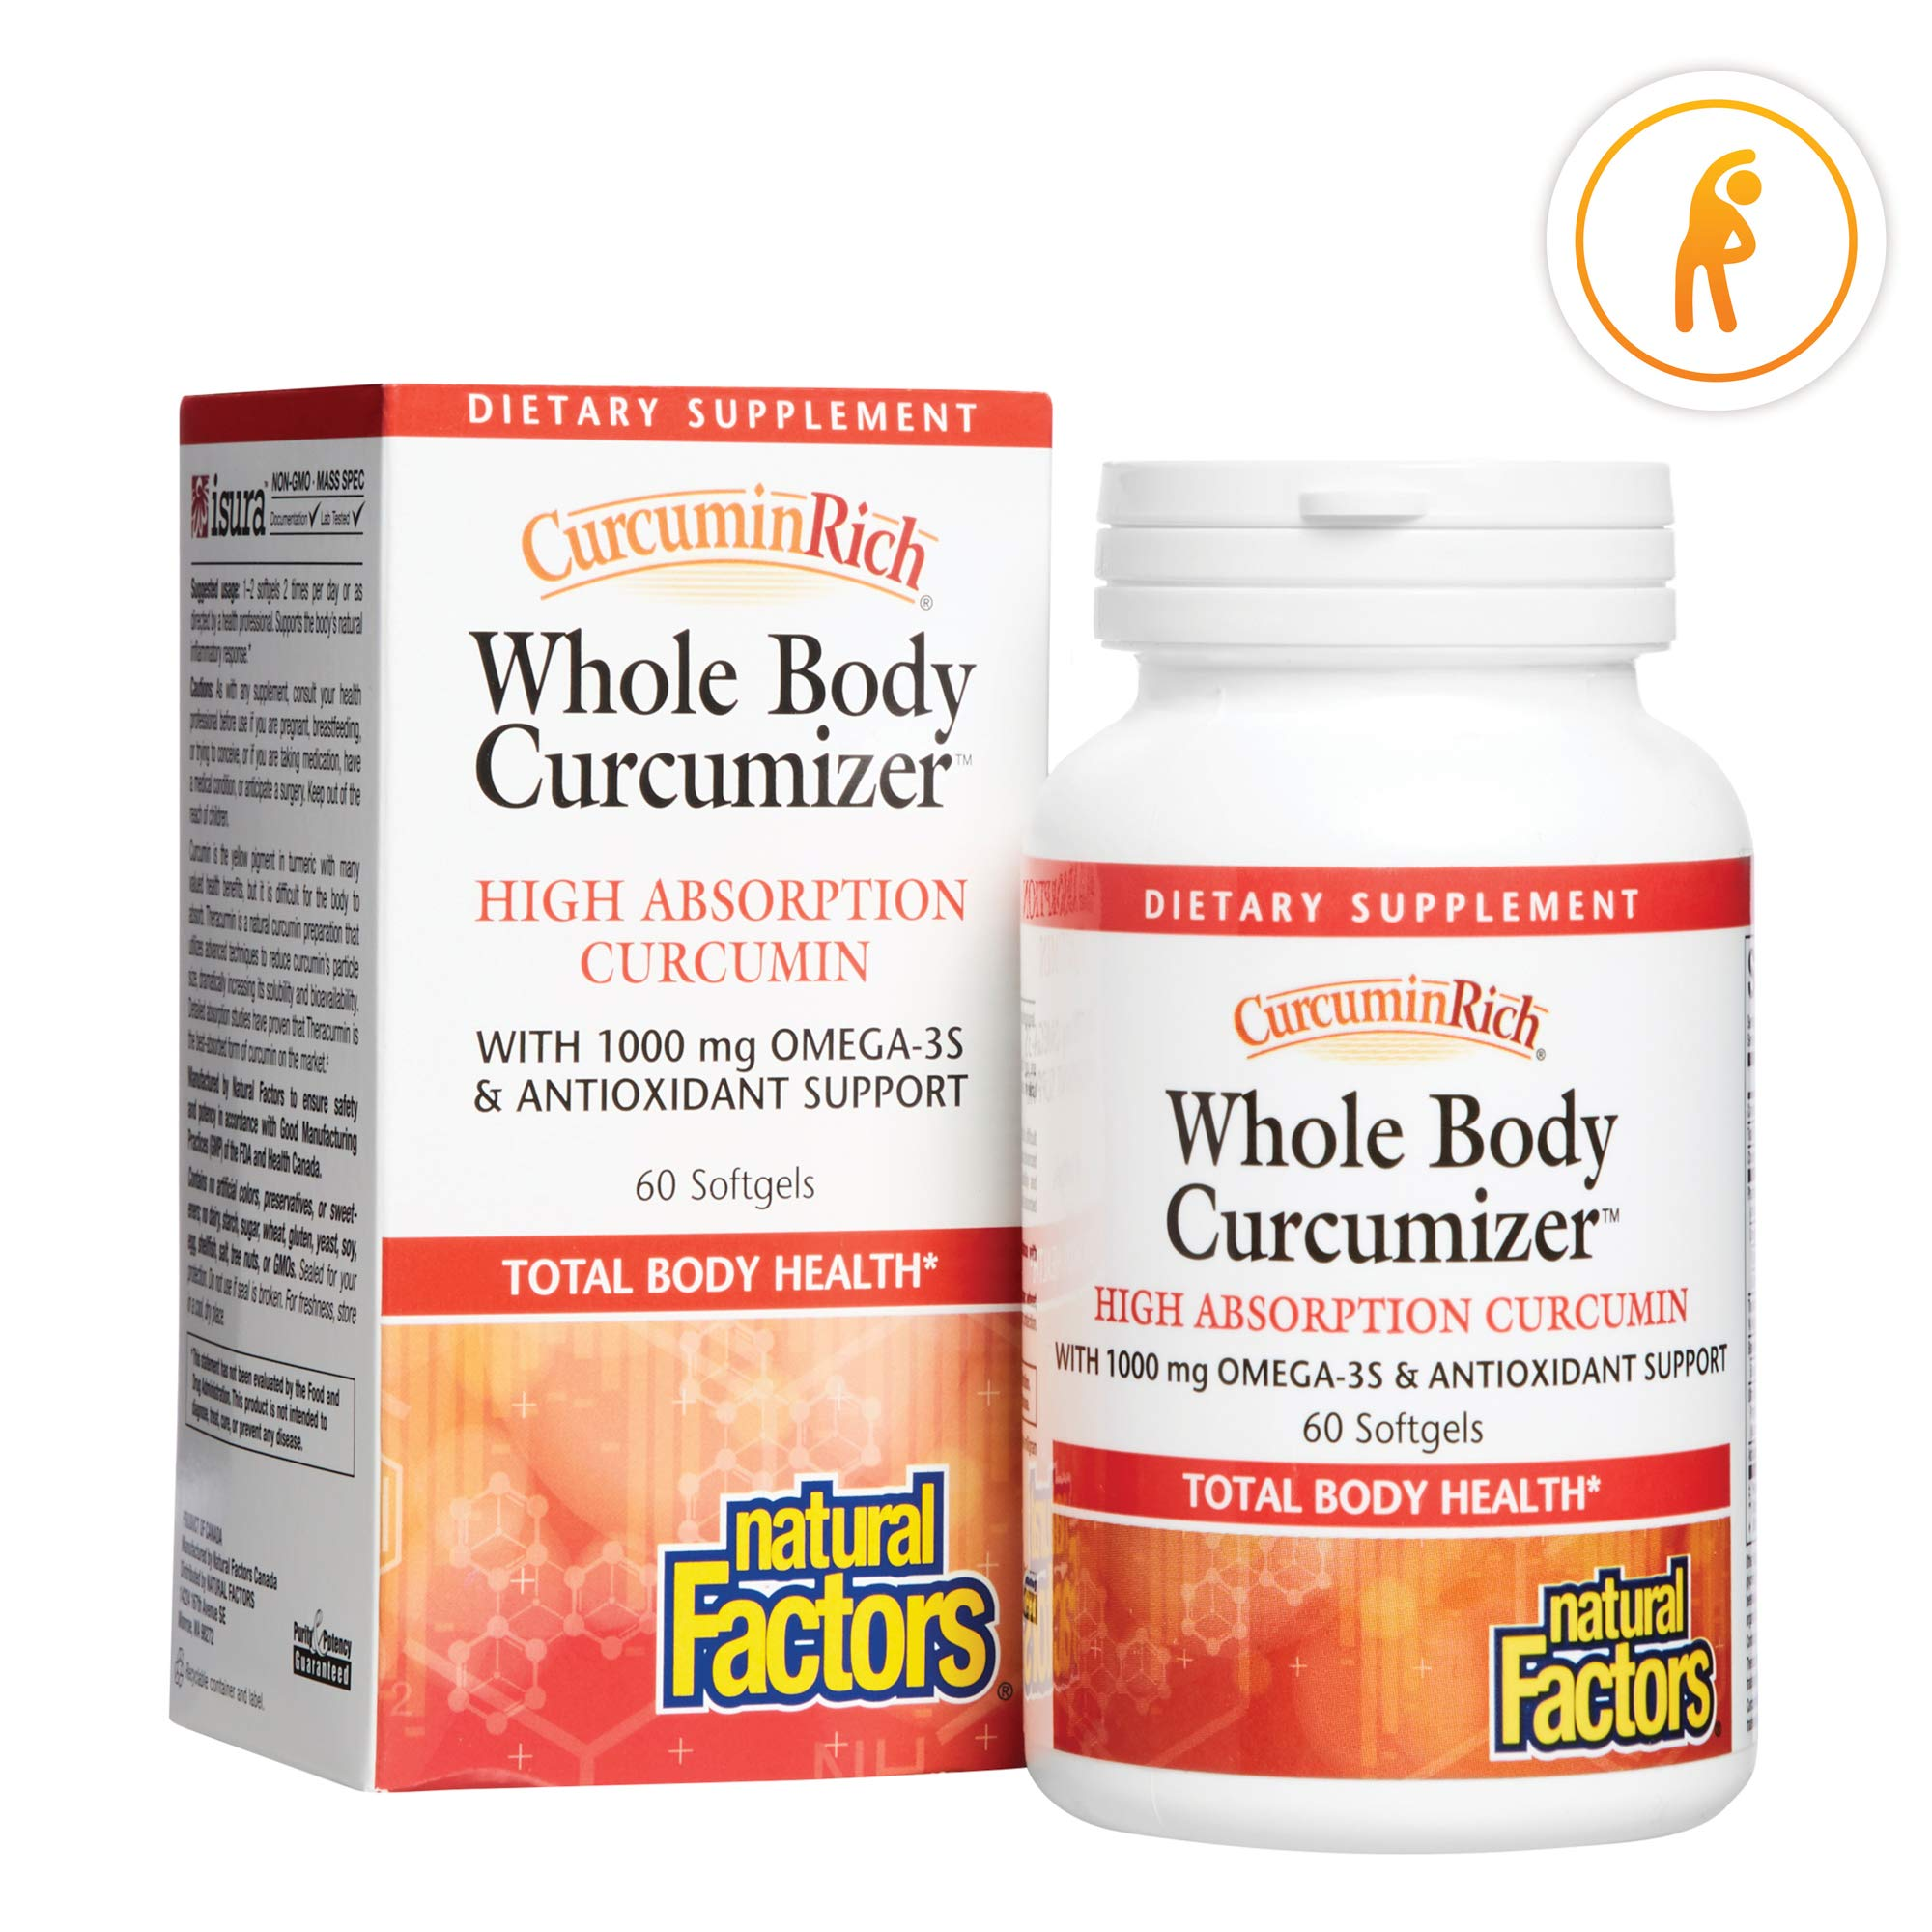 CurcuminRich Whole Body Curcumizer by Natural Factors, Supports a Healthy Heart, Joints, Brain and Inflammatory Response with Omega-3 EPA and DHA, 60 softgels (30 Servings) by Natural Factors